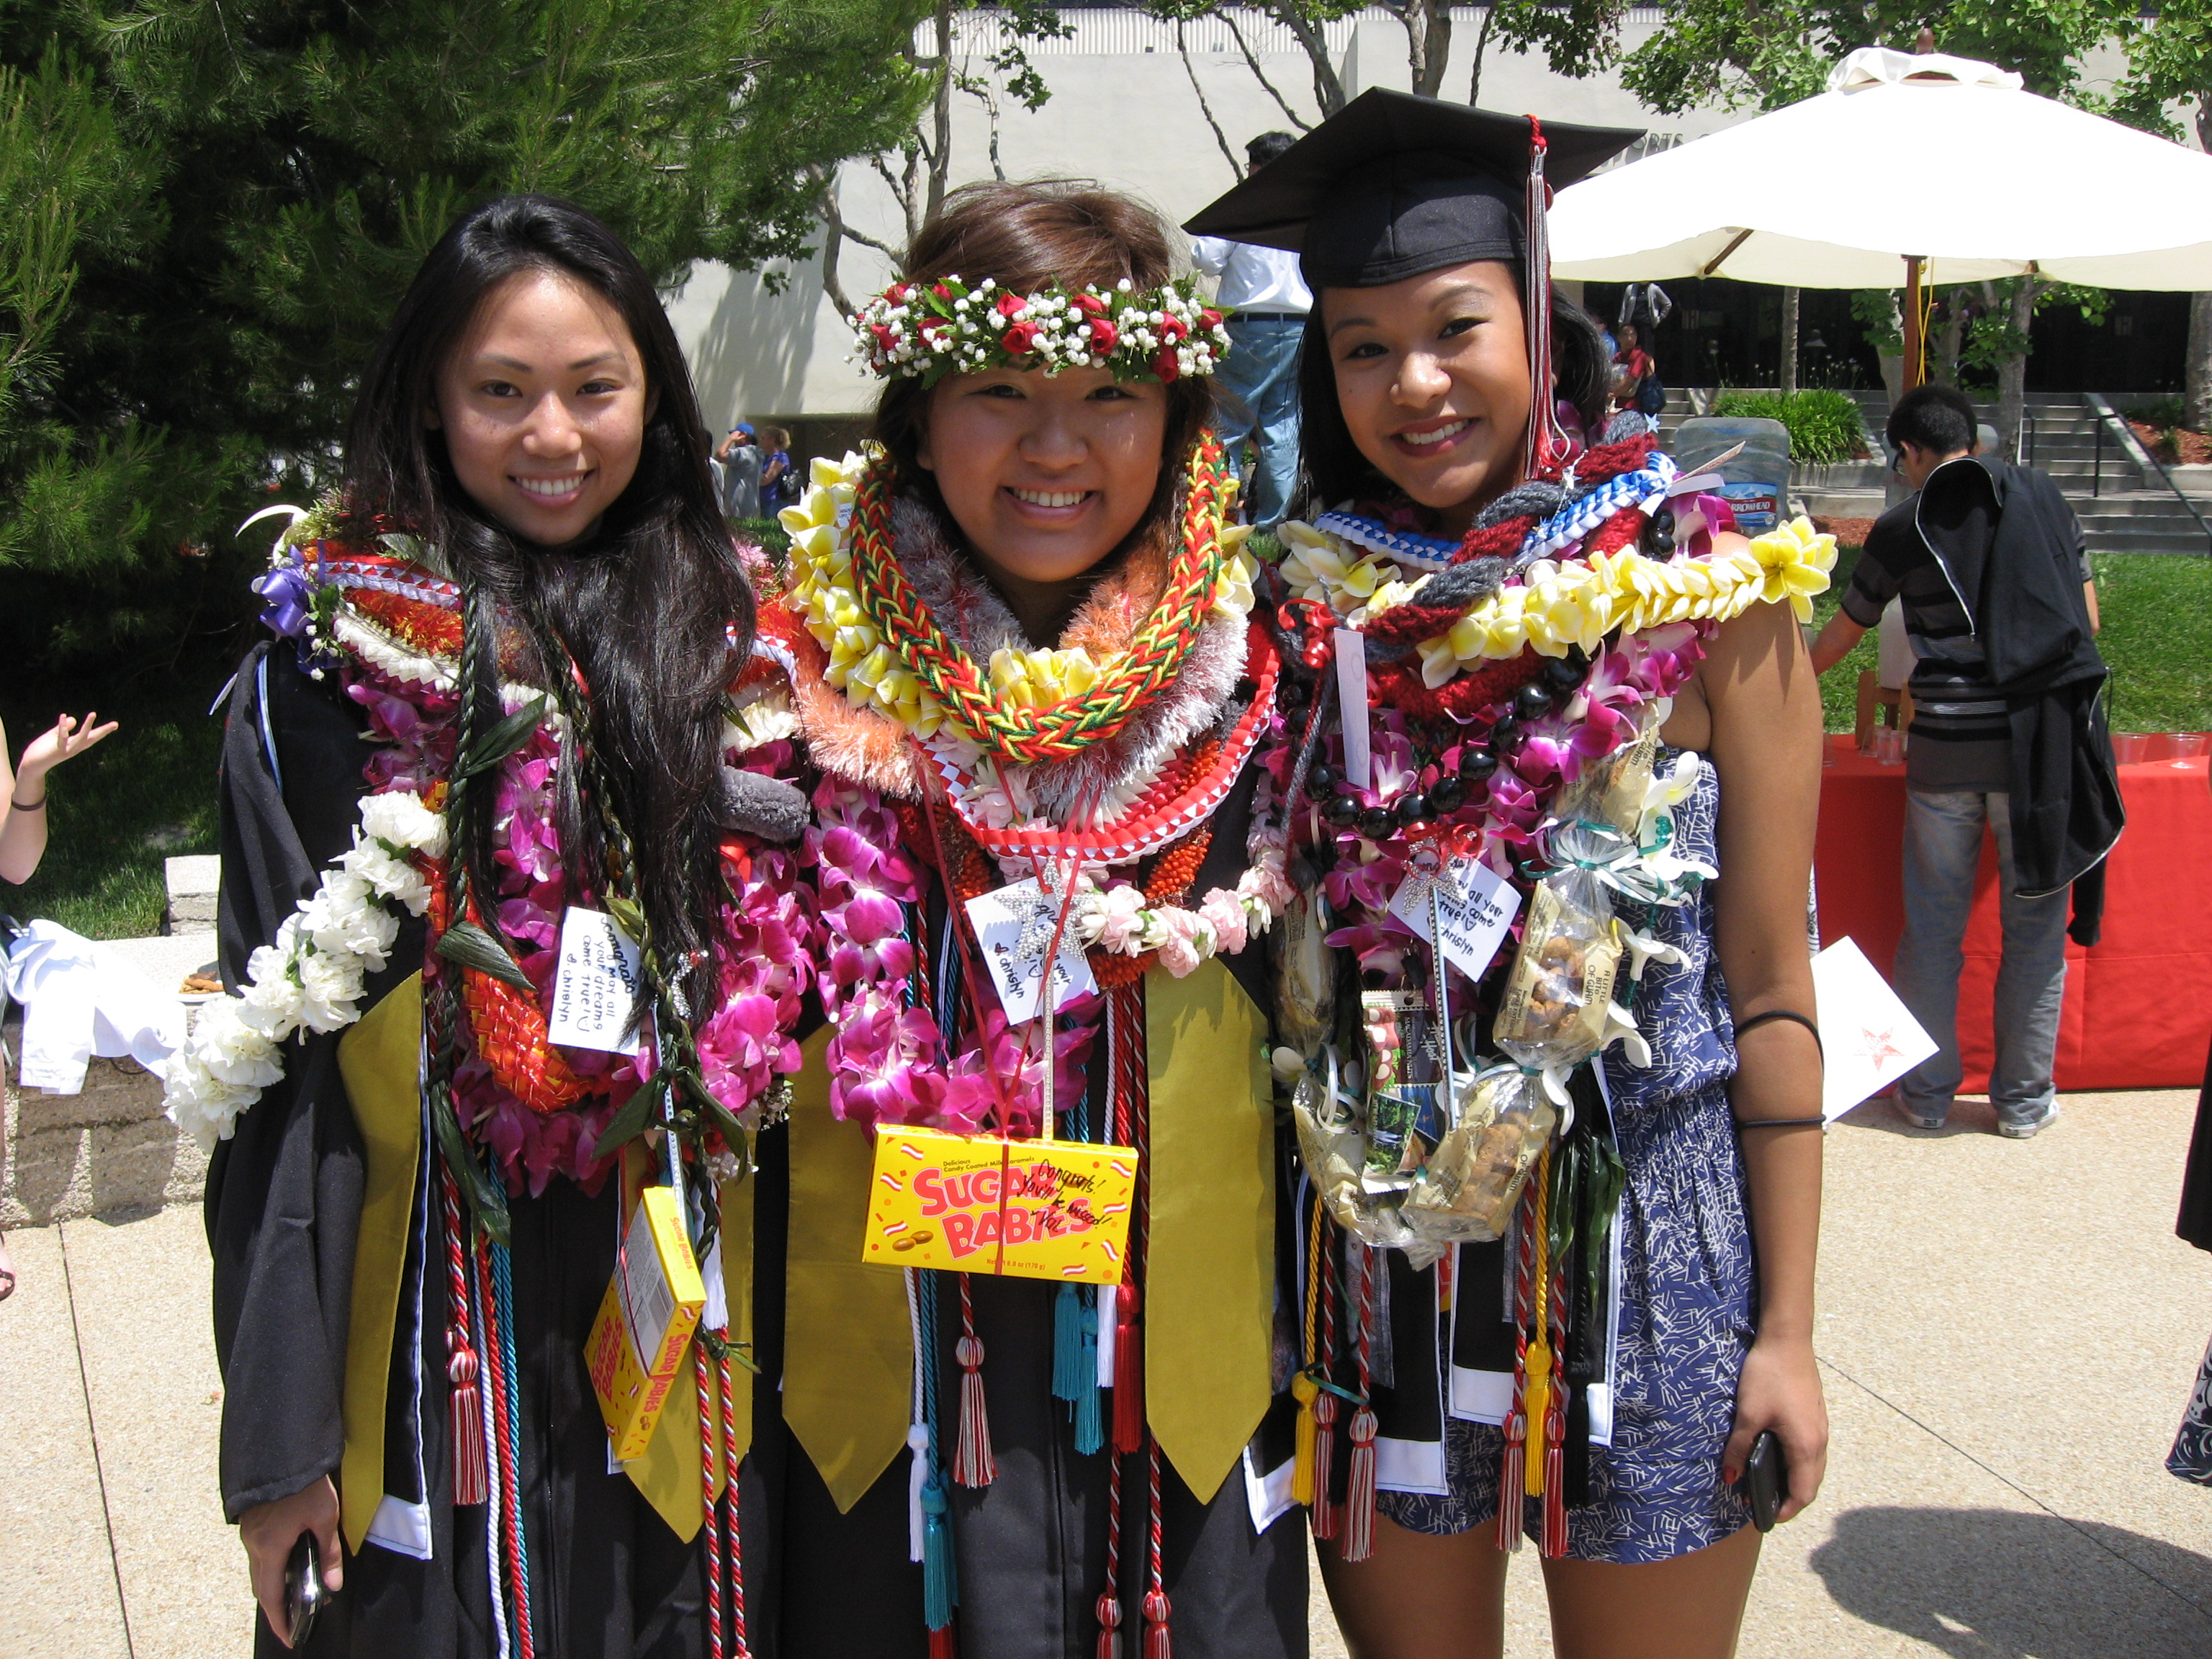 graduates in celebration leis